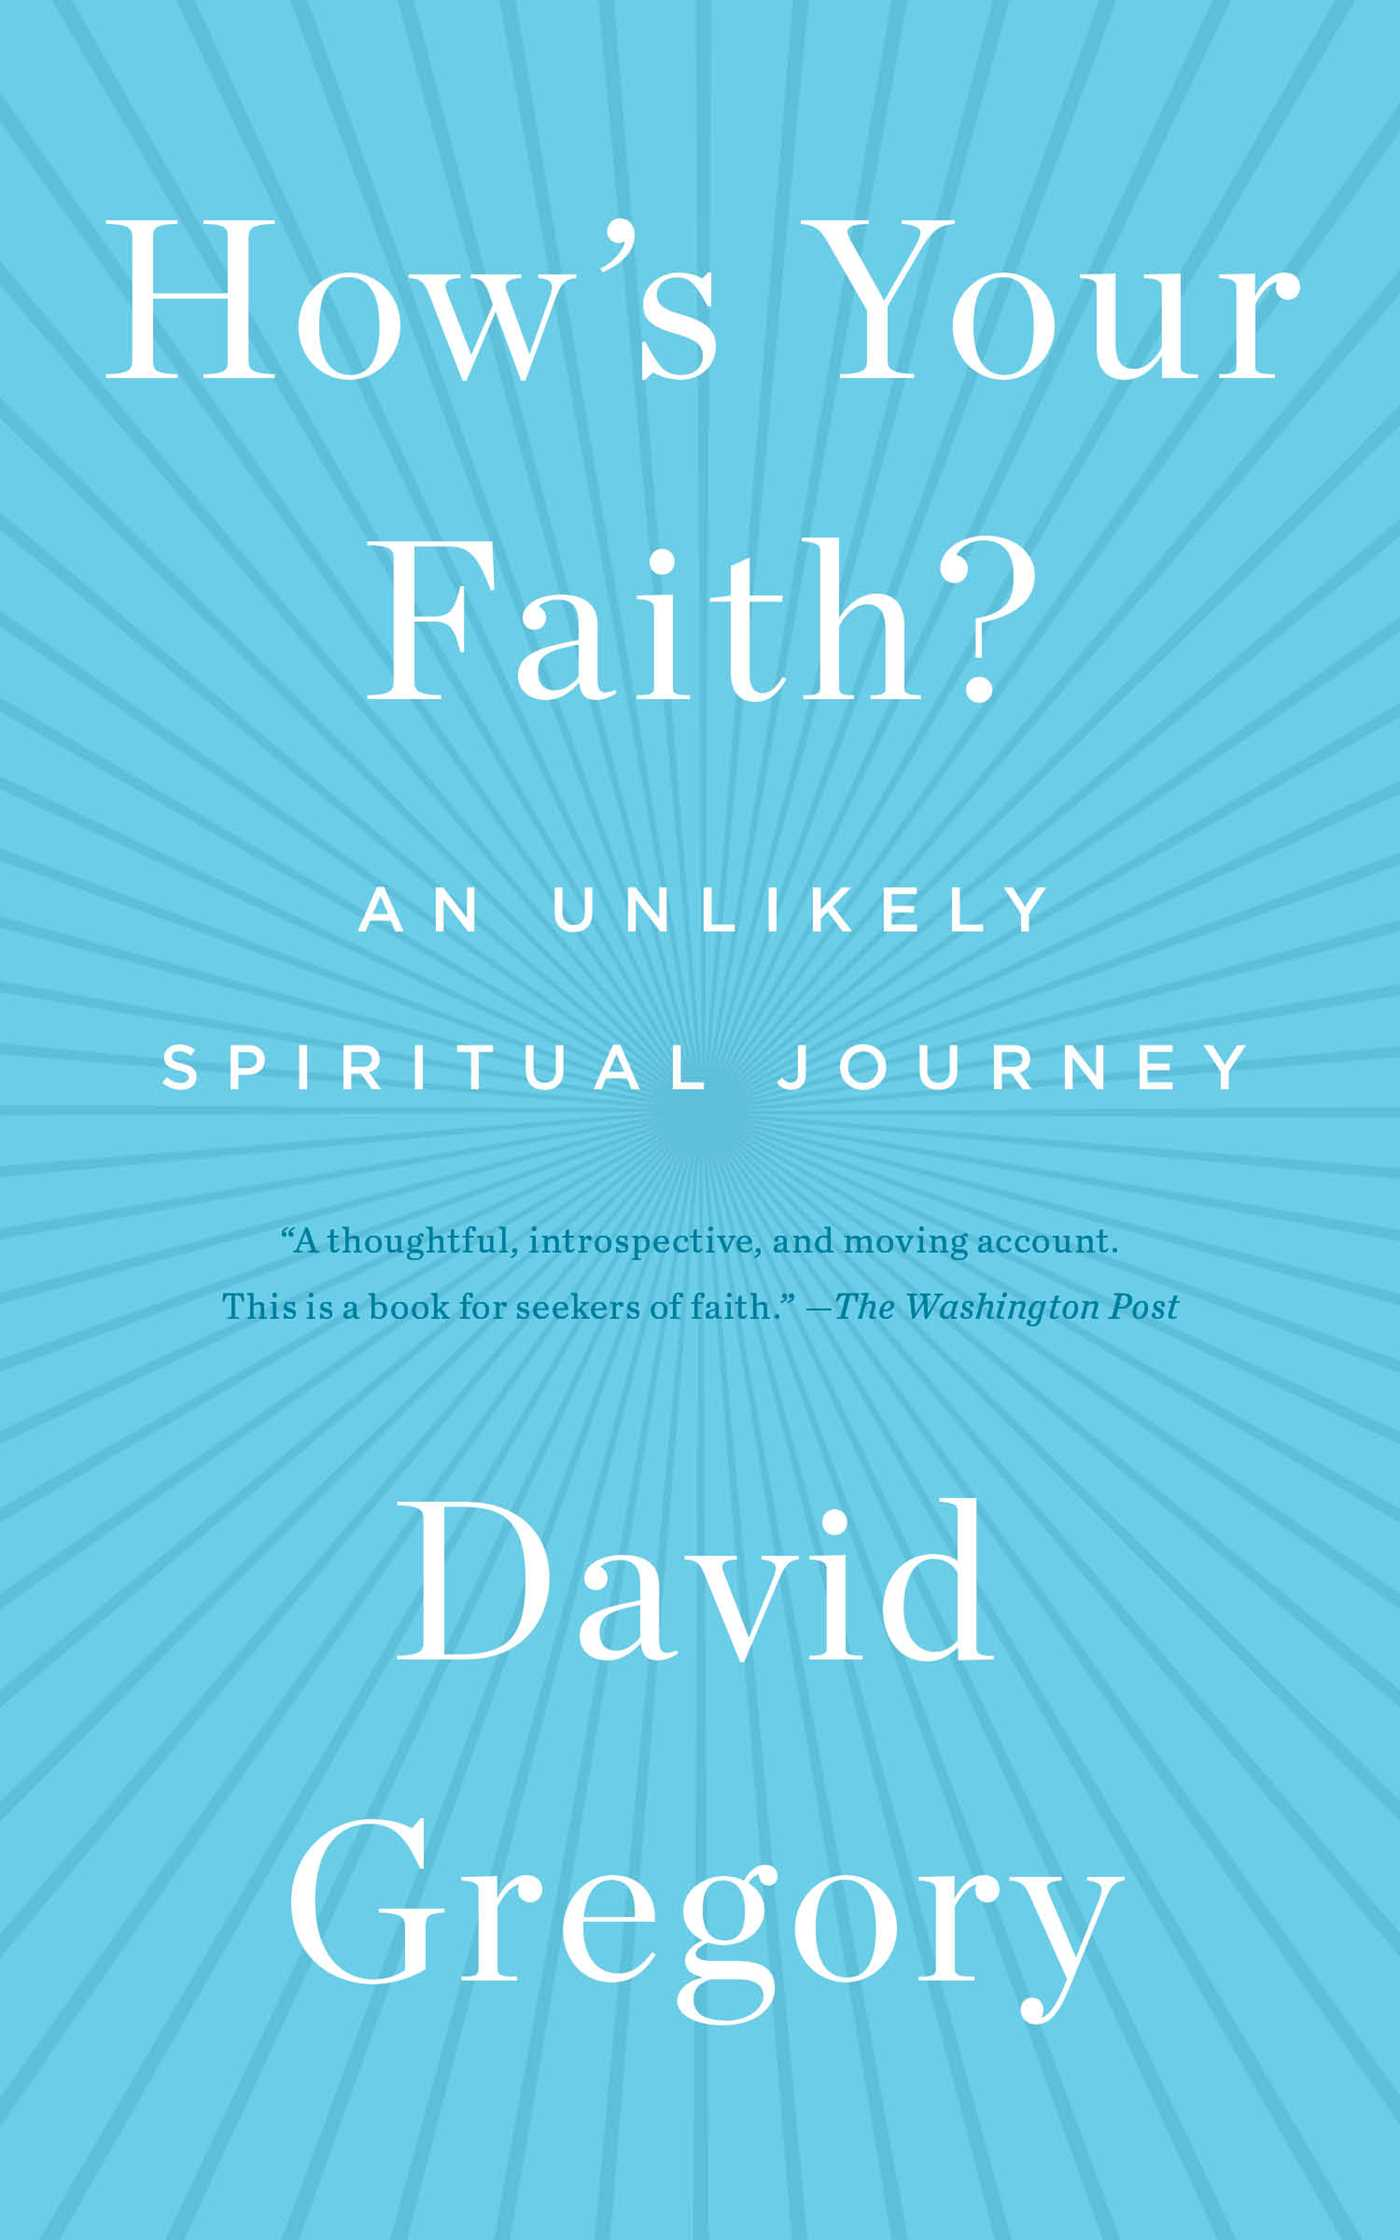 how s your faith book by david gregory official publisher how s your faith book by david gregory official publisher page simon schuster